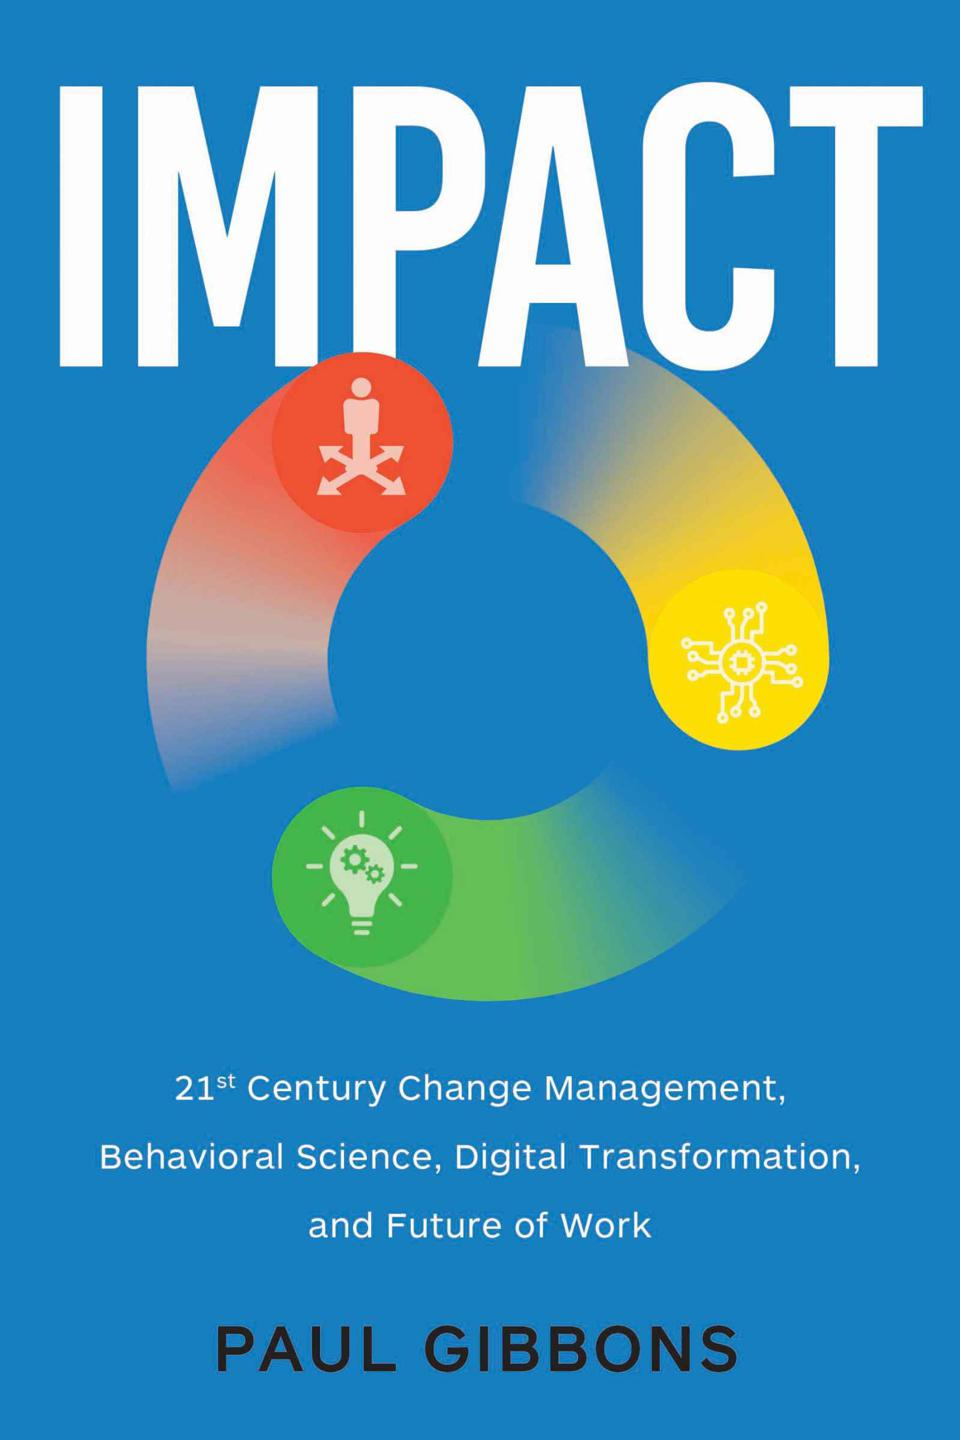 IMPACT: 21st Century Change Management, Behavioral Science, Digital Transformation, and the Future of Work by Paul Gibbons